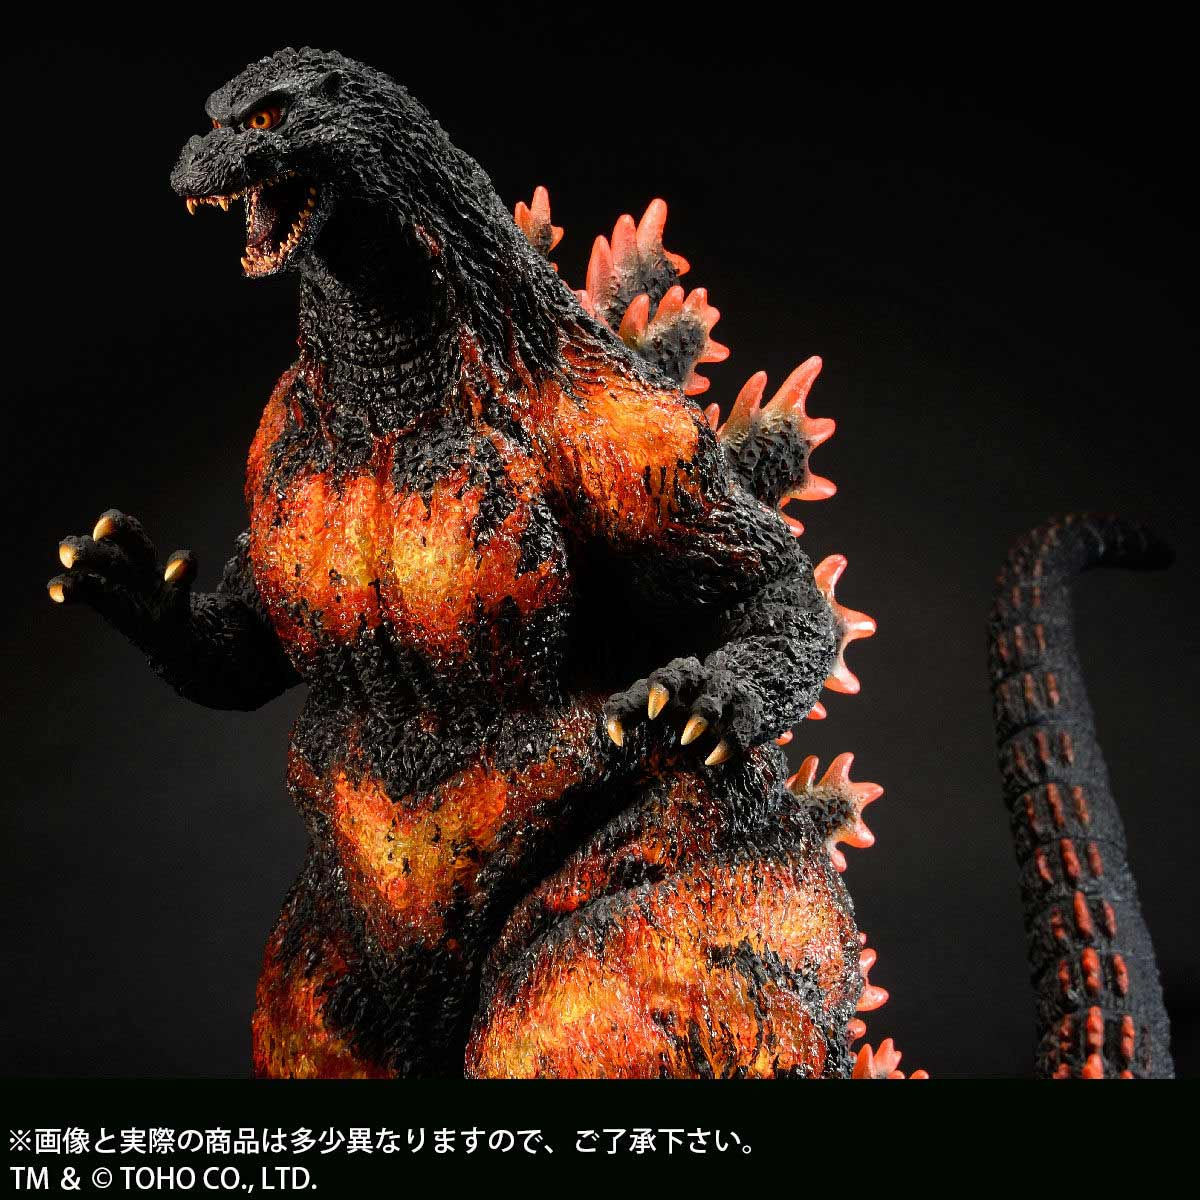 Closer front left view of the 30cm Series Yuji Sakai Modeling Collection Godzilla 1995 Ric Exclusive vinyl figure by X-Plus.